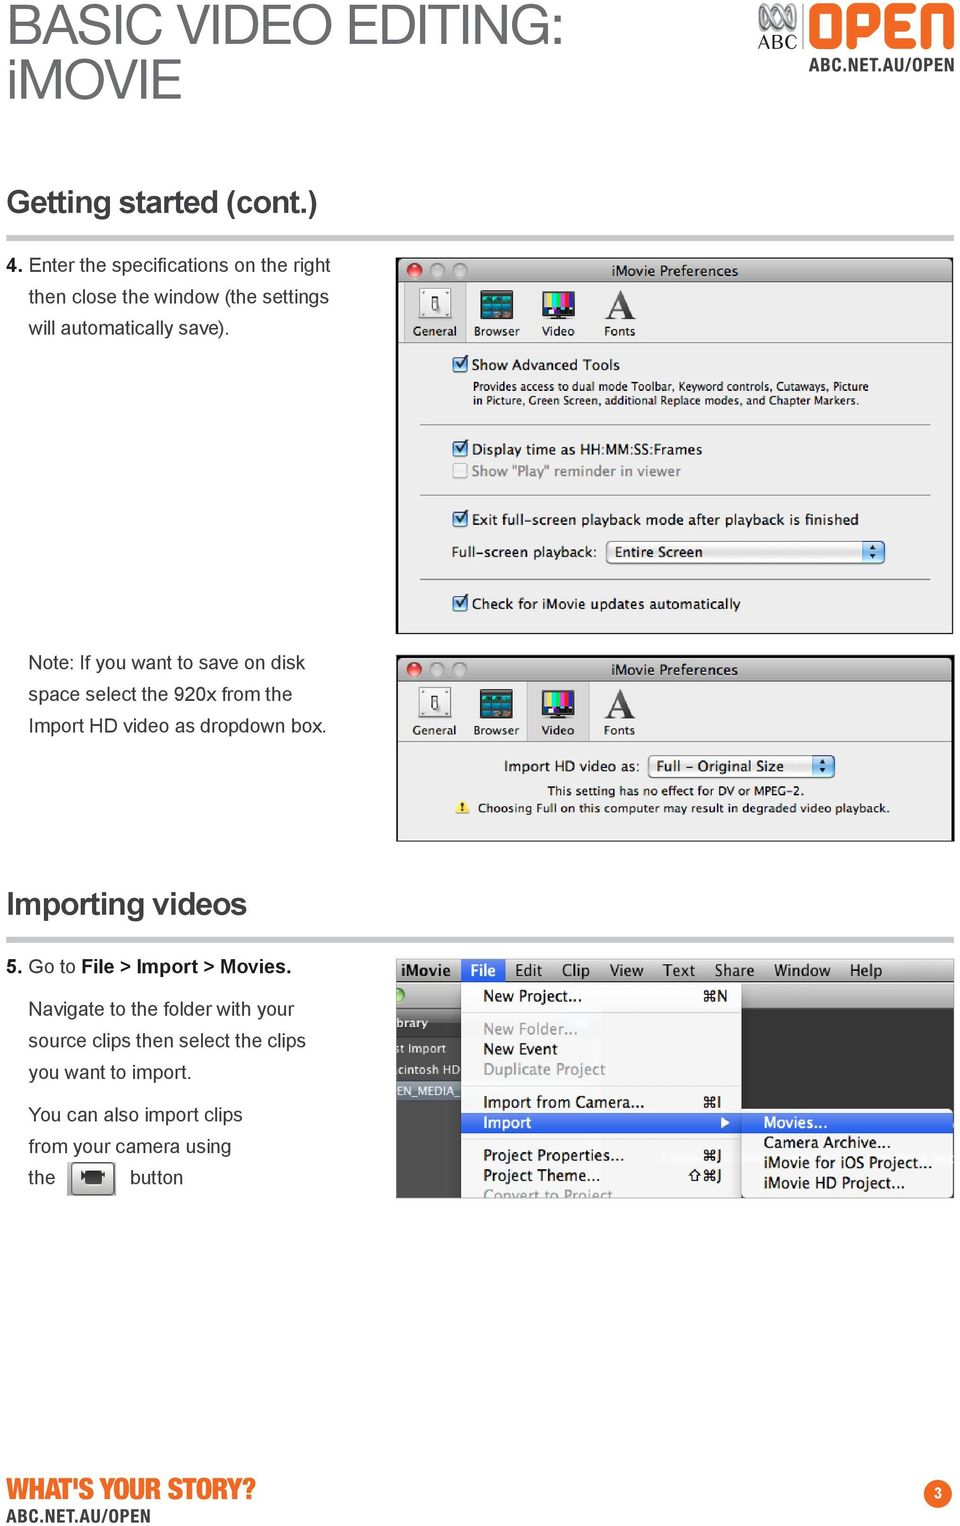 Note: If you want to save on disk space select the 920x from the Import HD video as dropdown box.